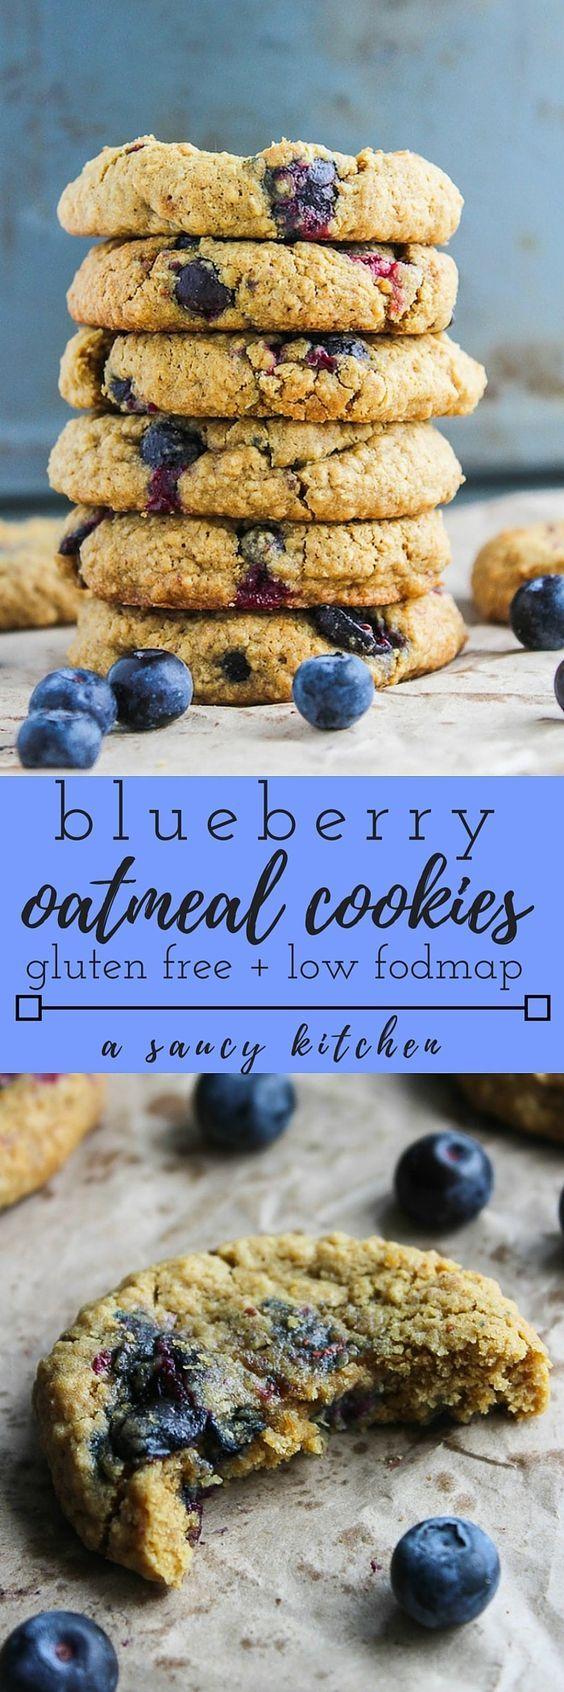 Oatmeal Blueberry Cookies #GlutenFree #DairyFree #LowFodmap